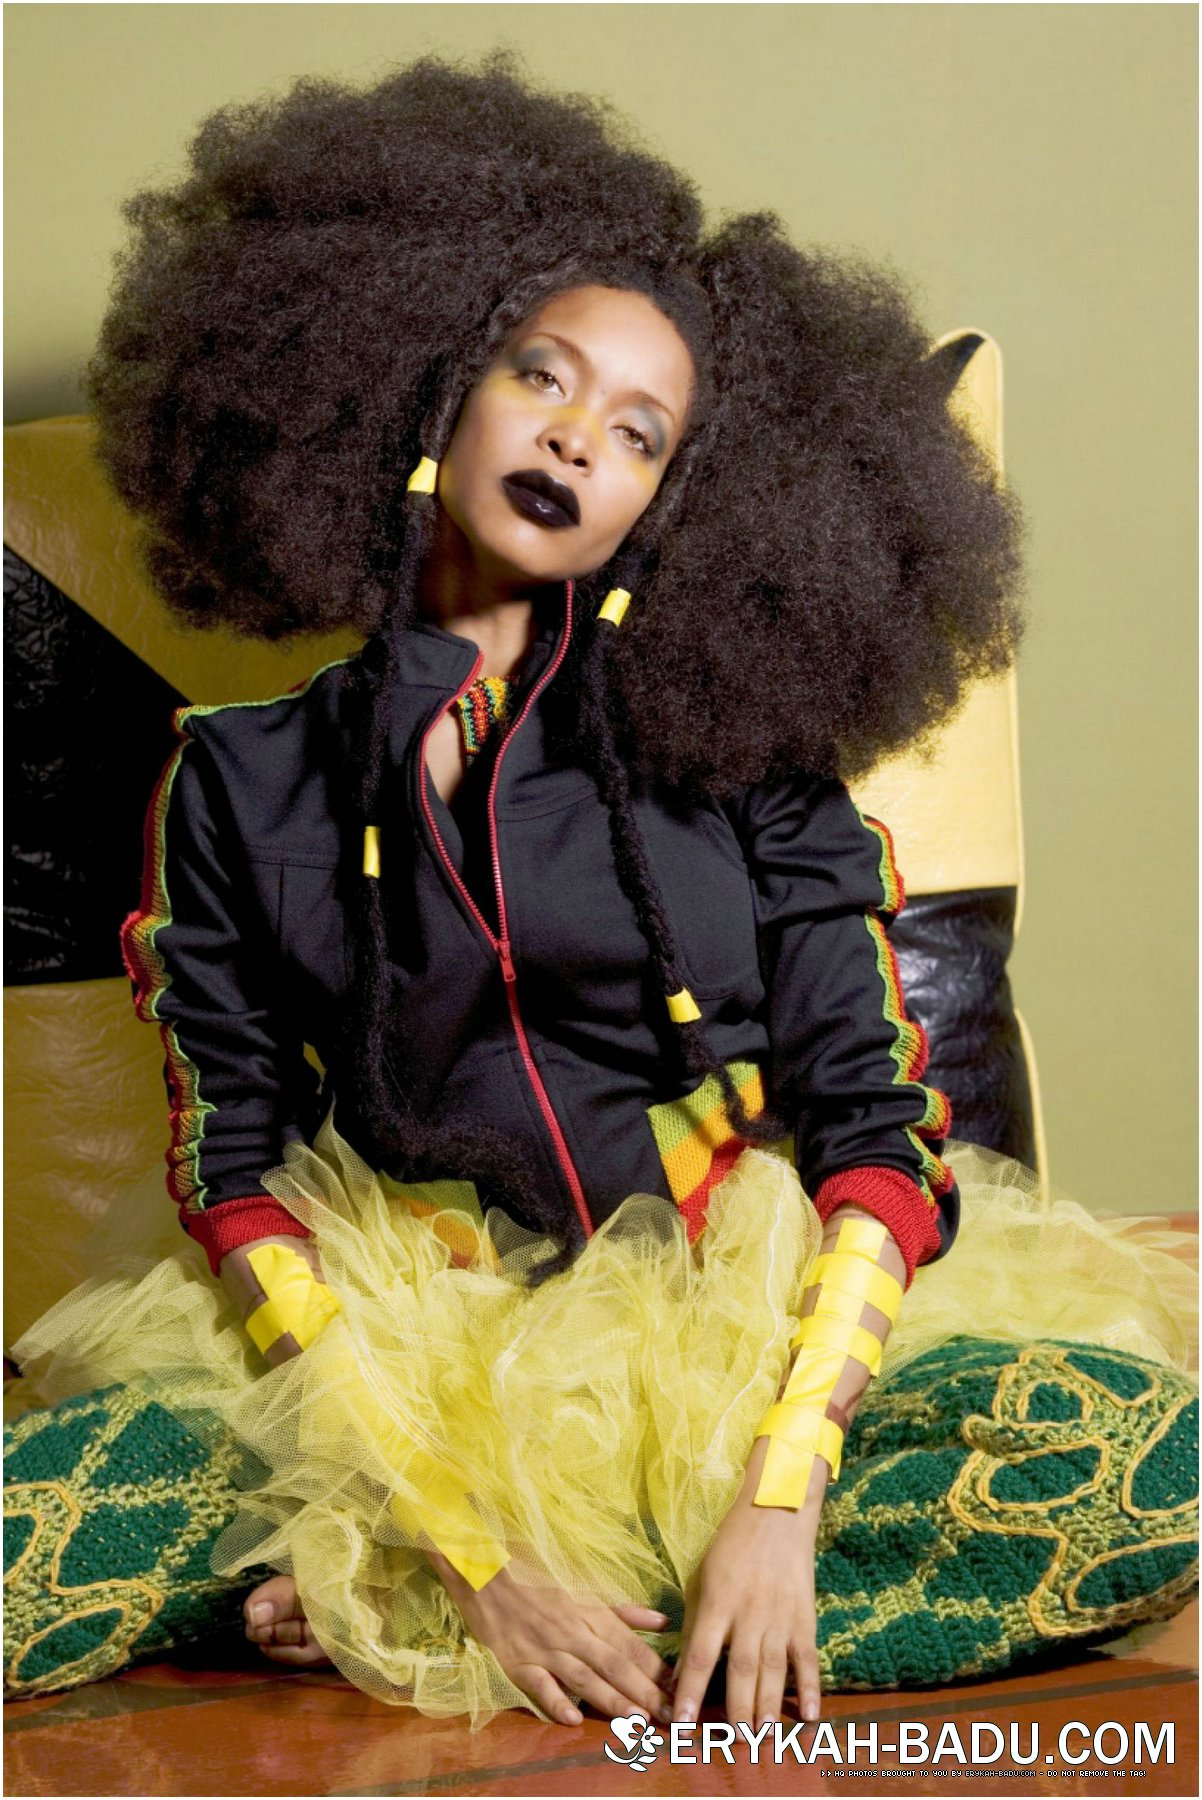 Happy Birthday Erykah Badu